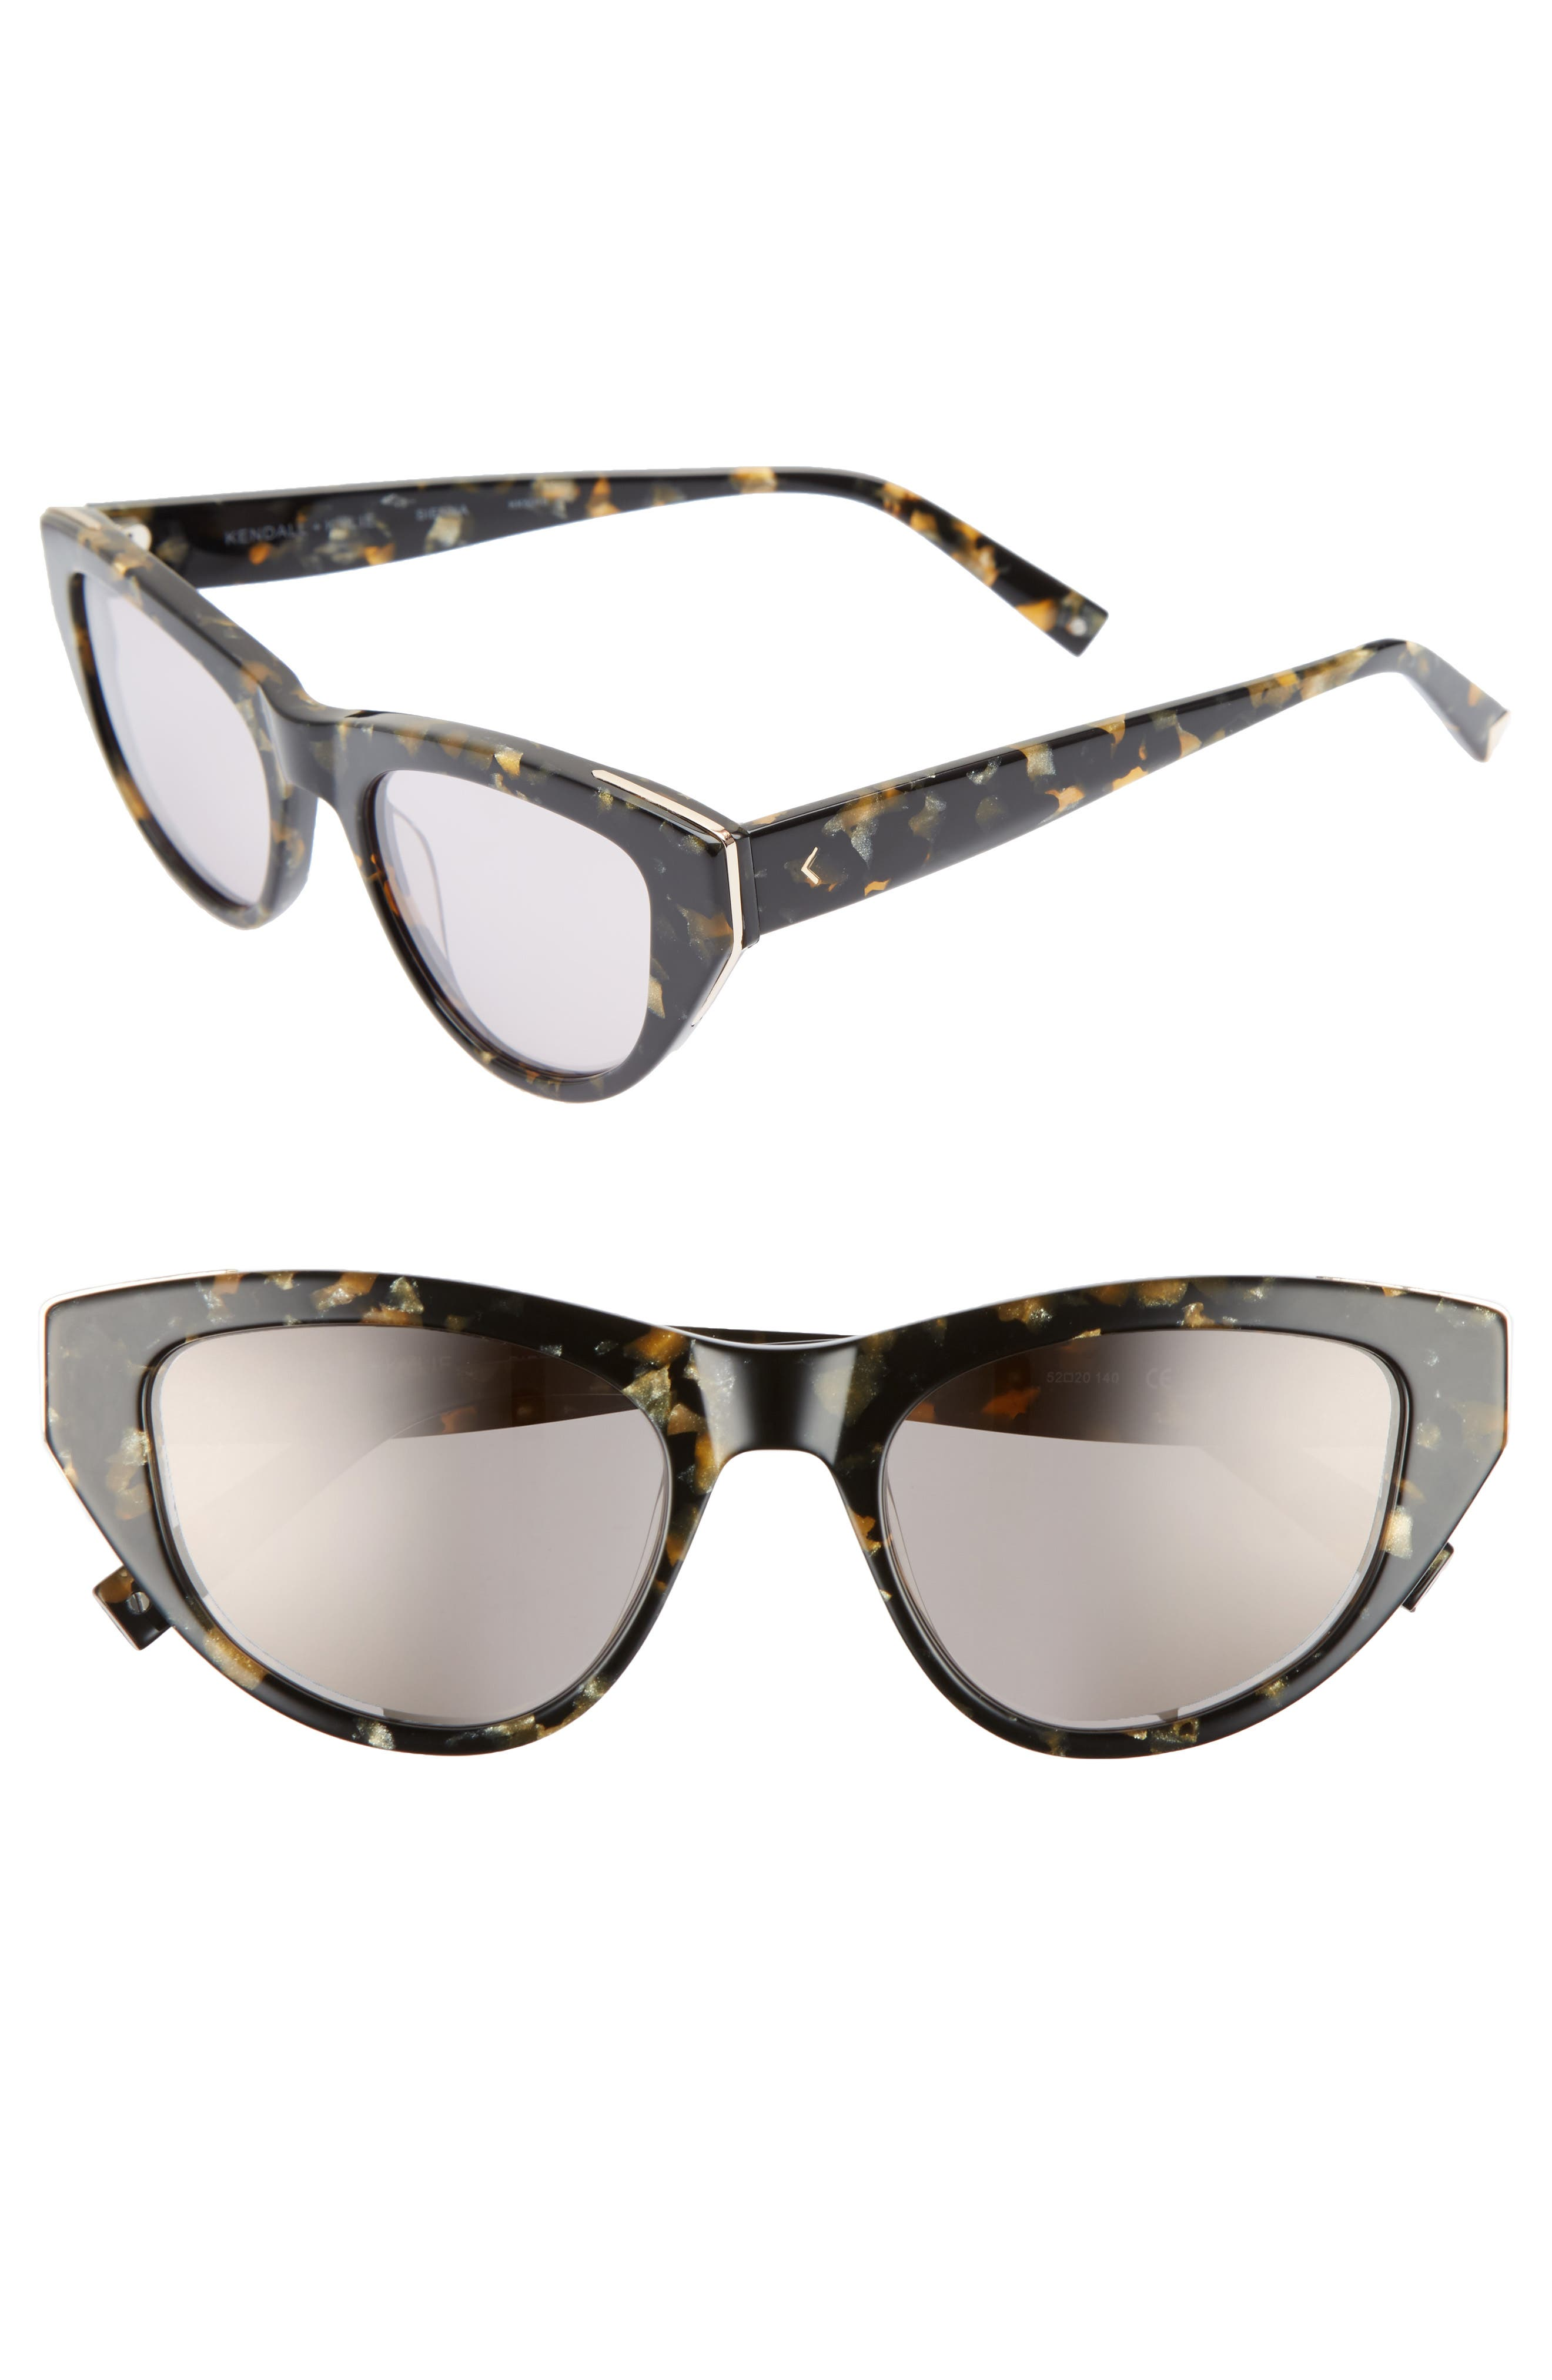 KENDALL + KYLIE Sienna 52mm Retro Cat Eye Sunglasses